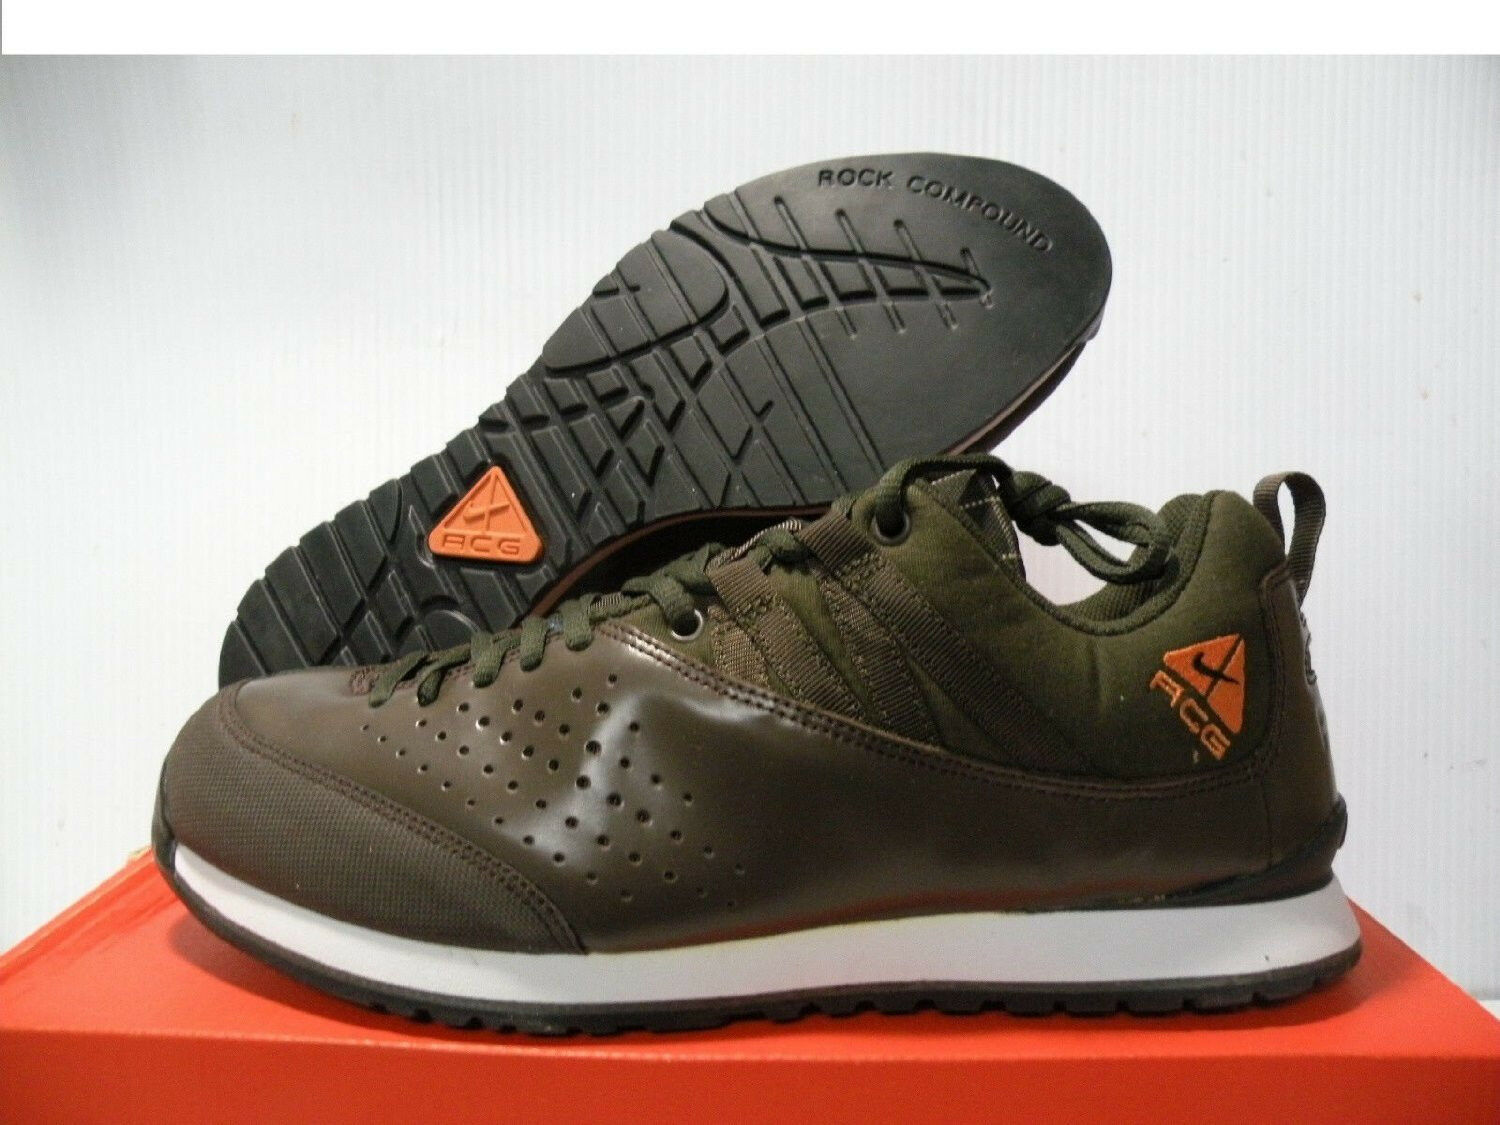 NIKE AIR OKWAHN LOW SNEAKERS MEN SHOES BROWN/GREEN 314-281 SIZE 9.5 NEW